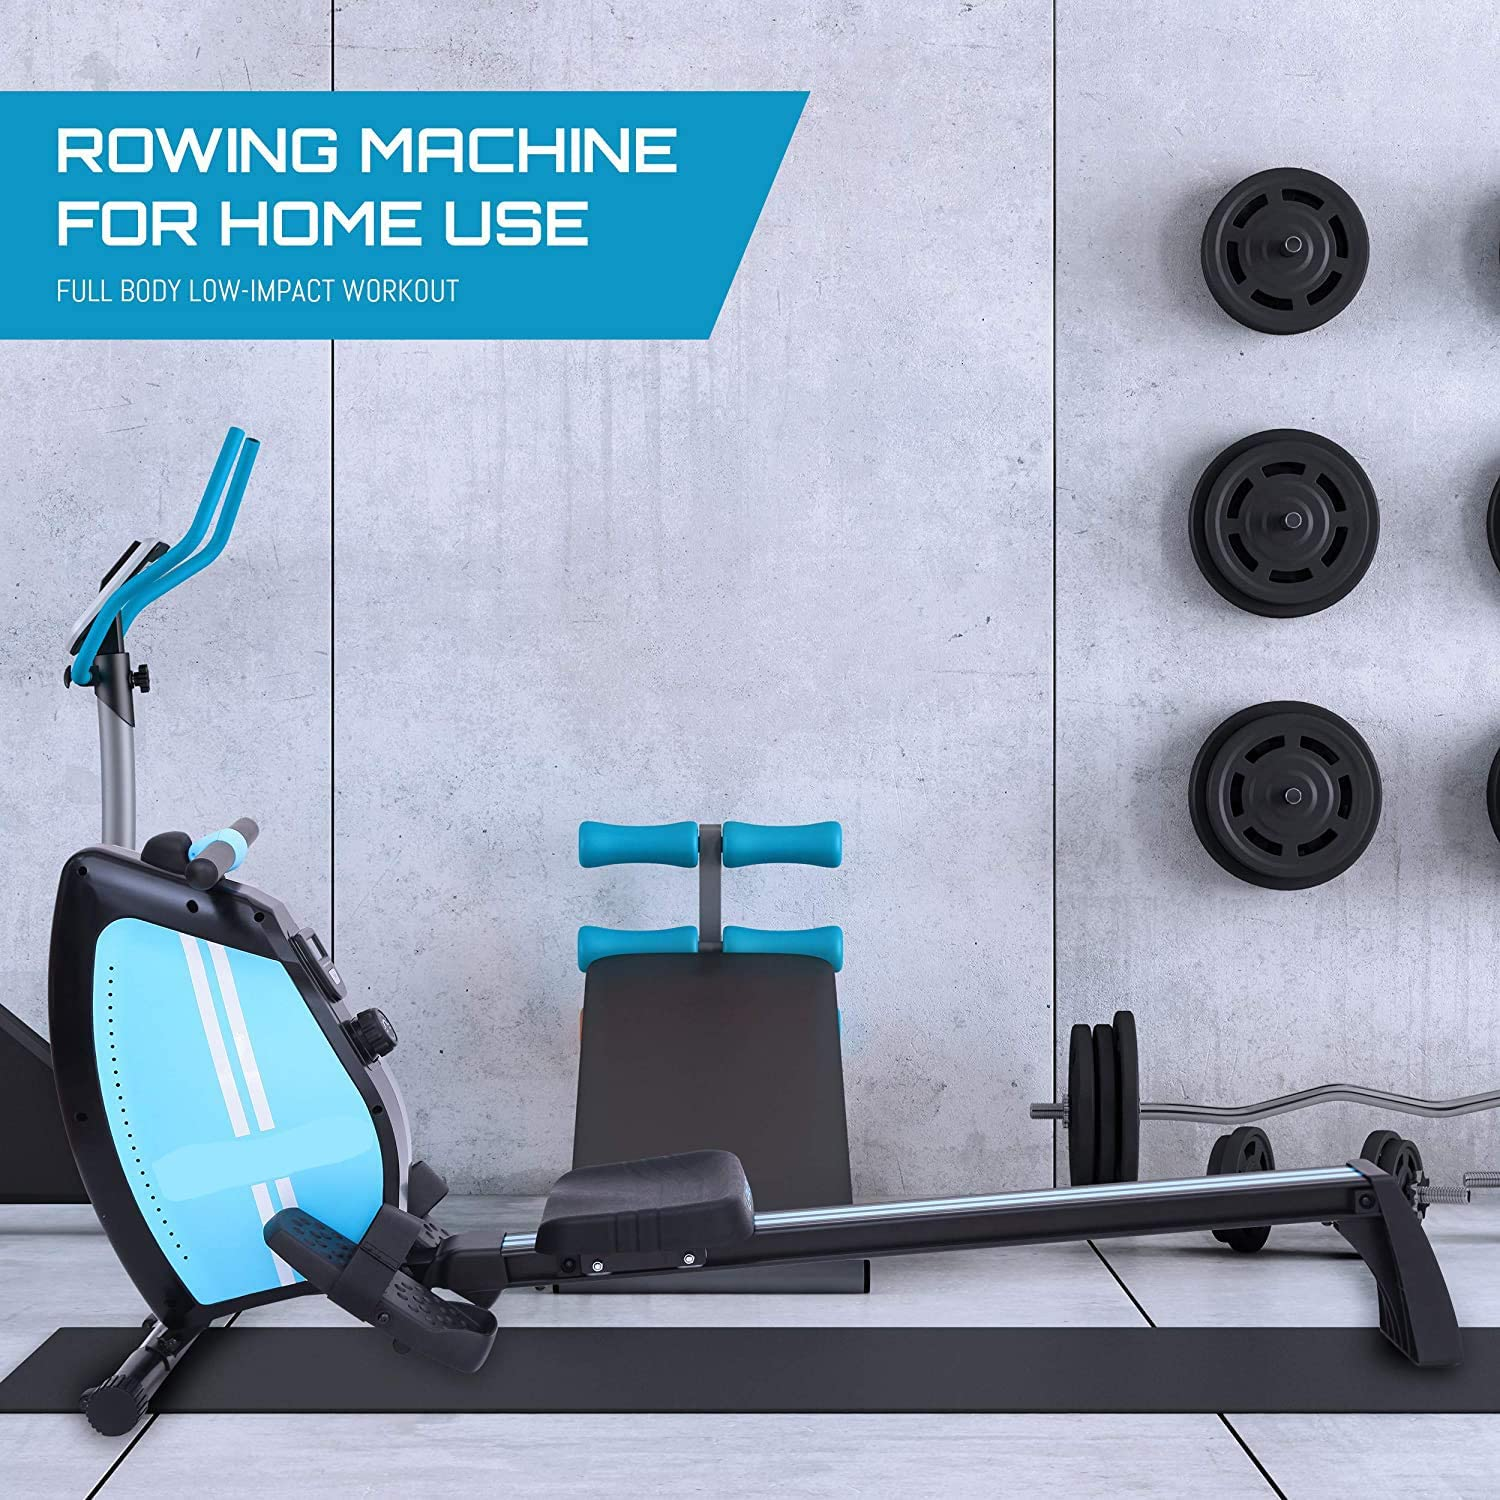 no bland Foldable Rowing Machine for Home Use Air Resistance Rower Silent Magnetic 12 Levels Adjustable Resistance LCD Monitor Fitness Equipment Cardio Workout Indoor